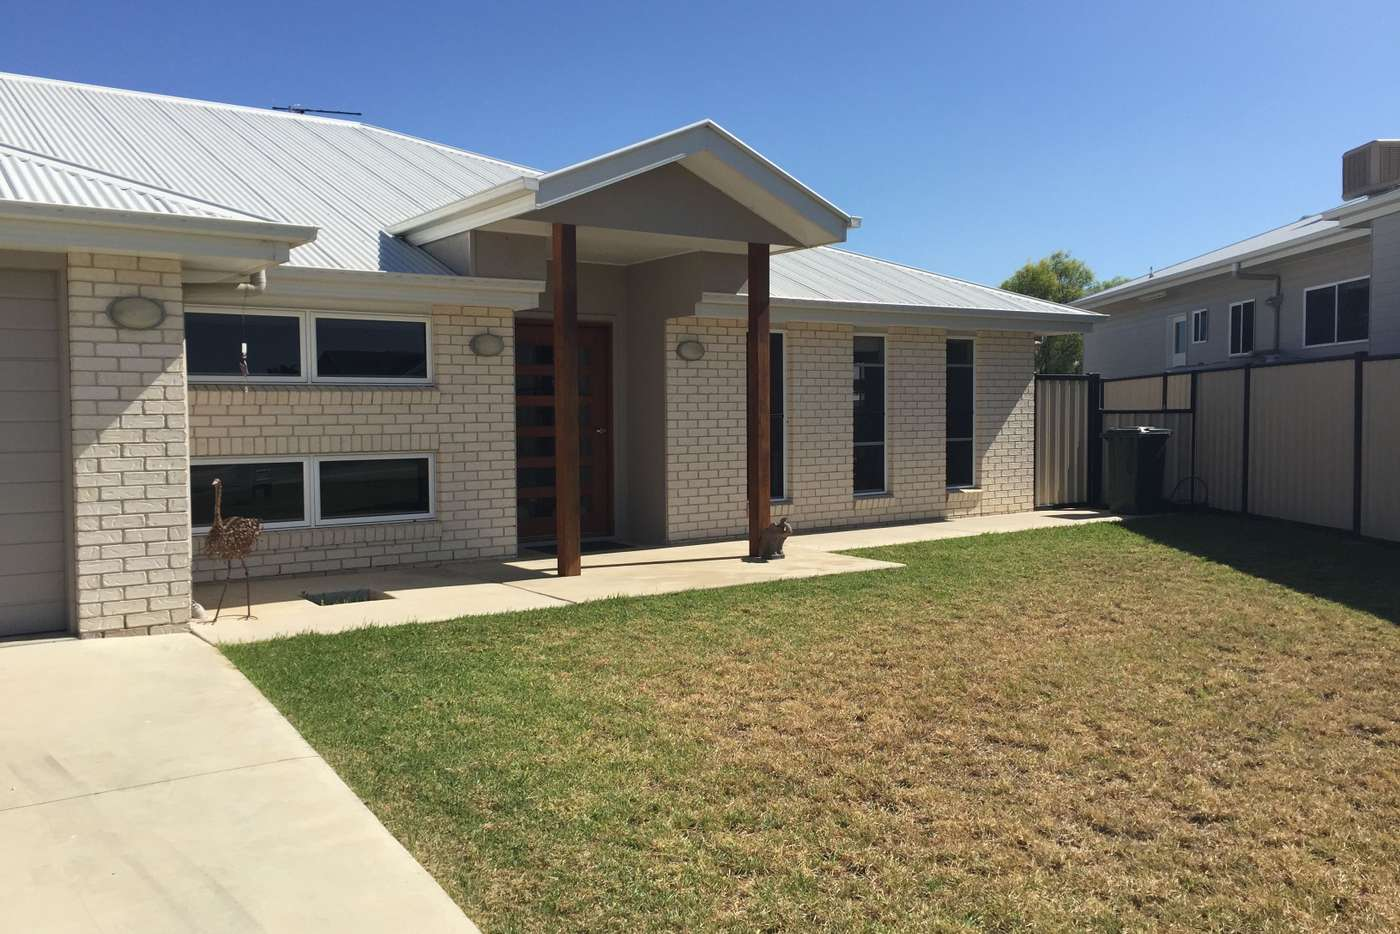 Main view of Homely house listing, 12 Lockyer Crescent, Roma QLD 4455